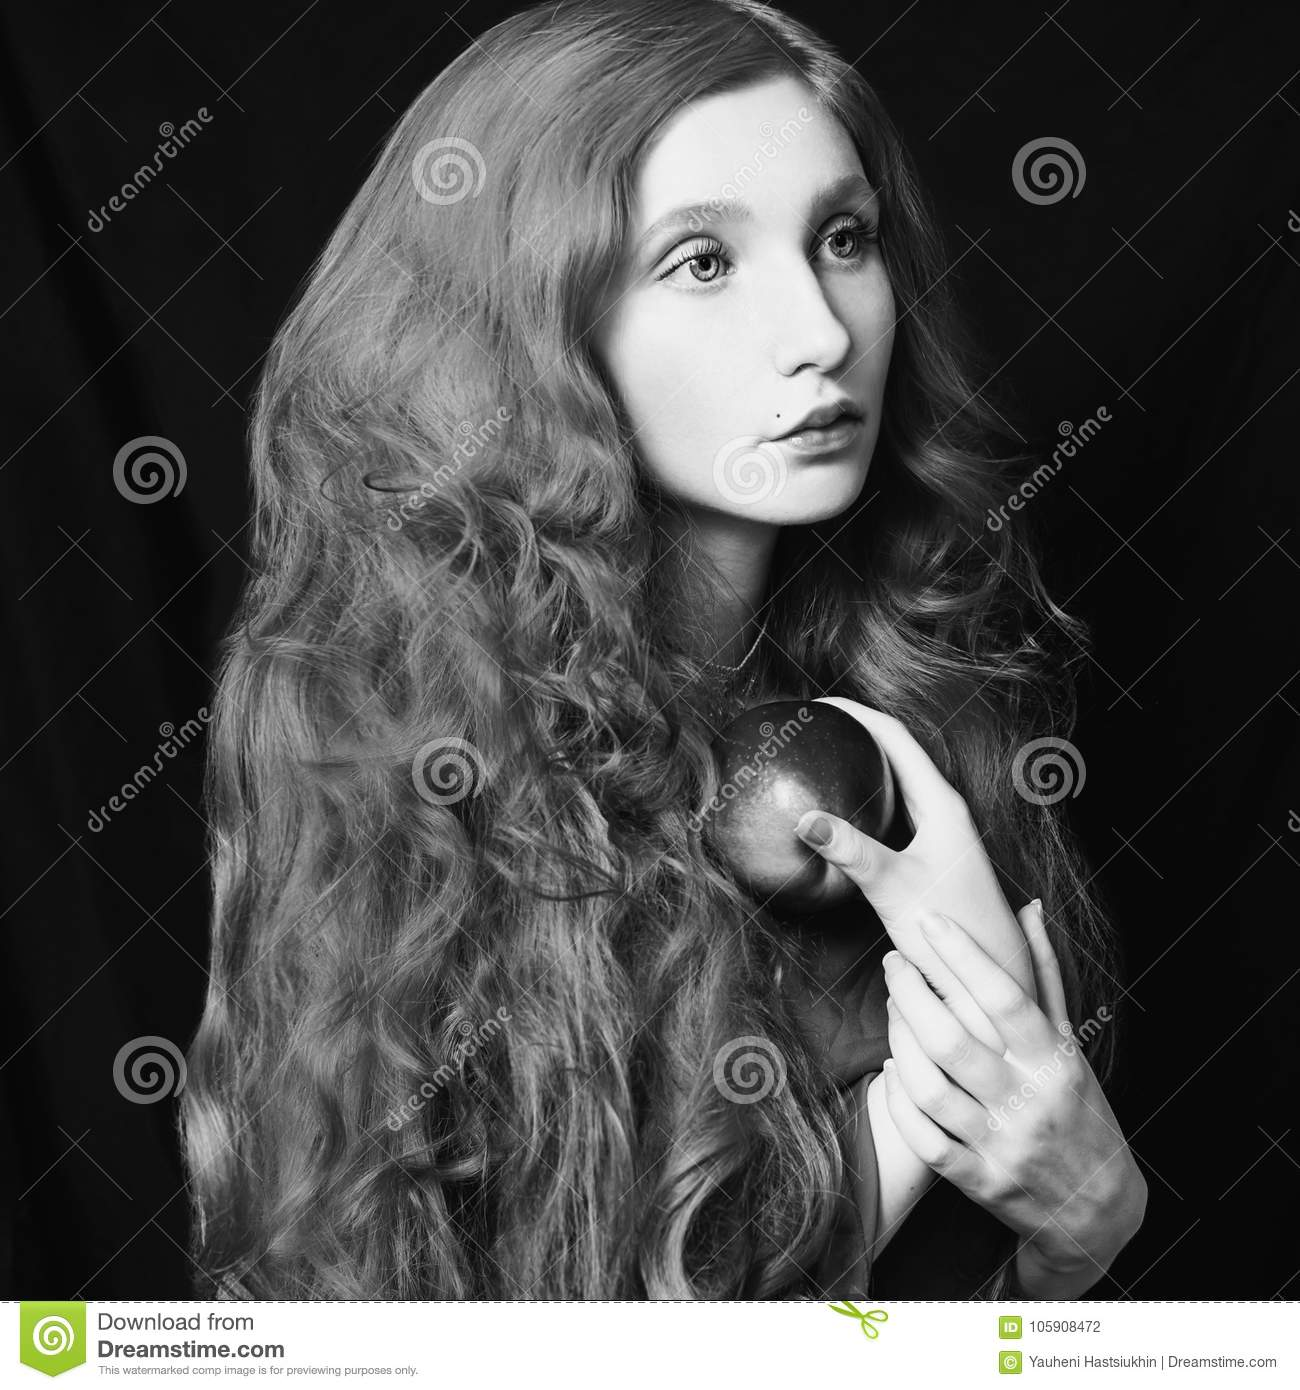 Woman with long curly flowing hair on a black background natural beauty the girl from the era of renaissance black and white art monochrome photography